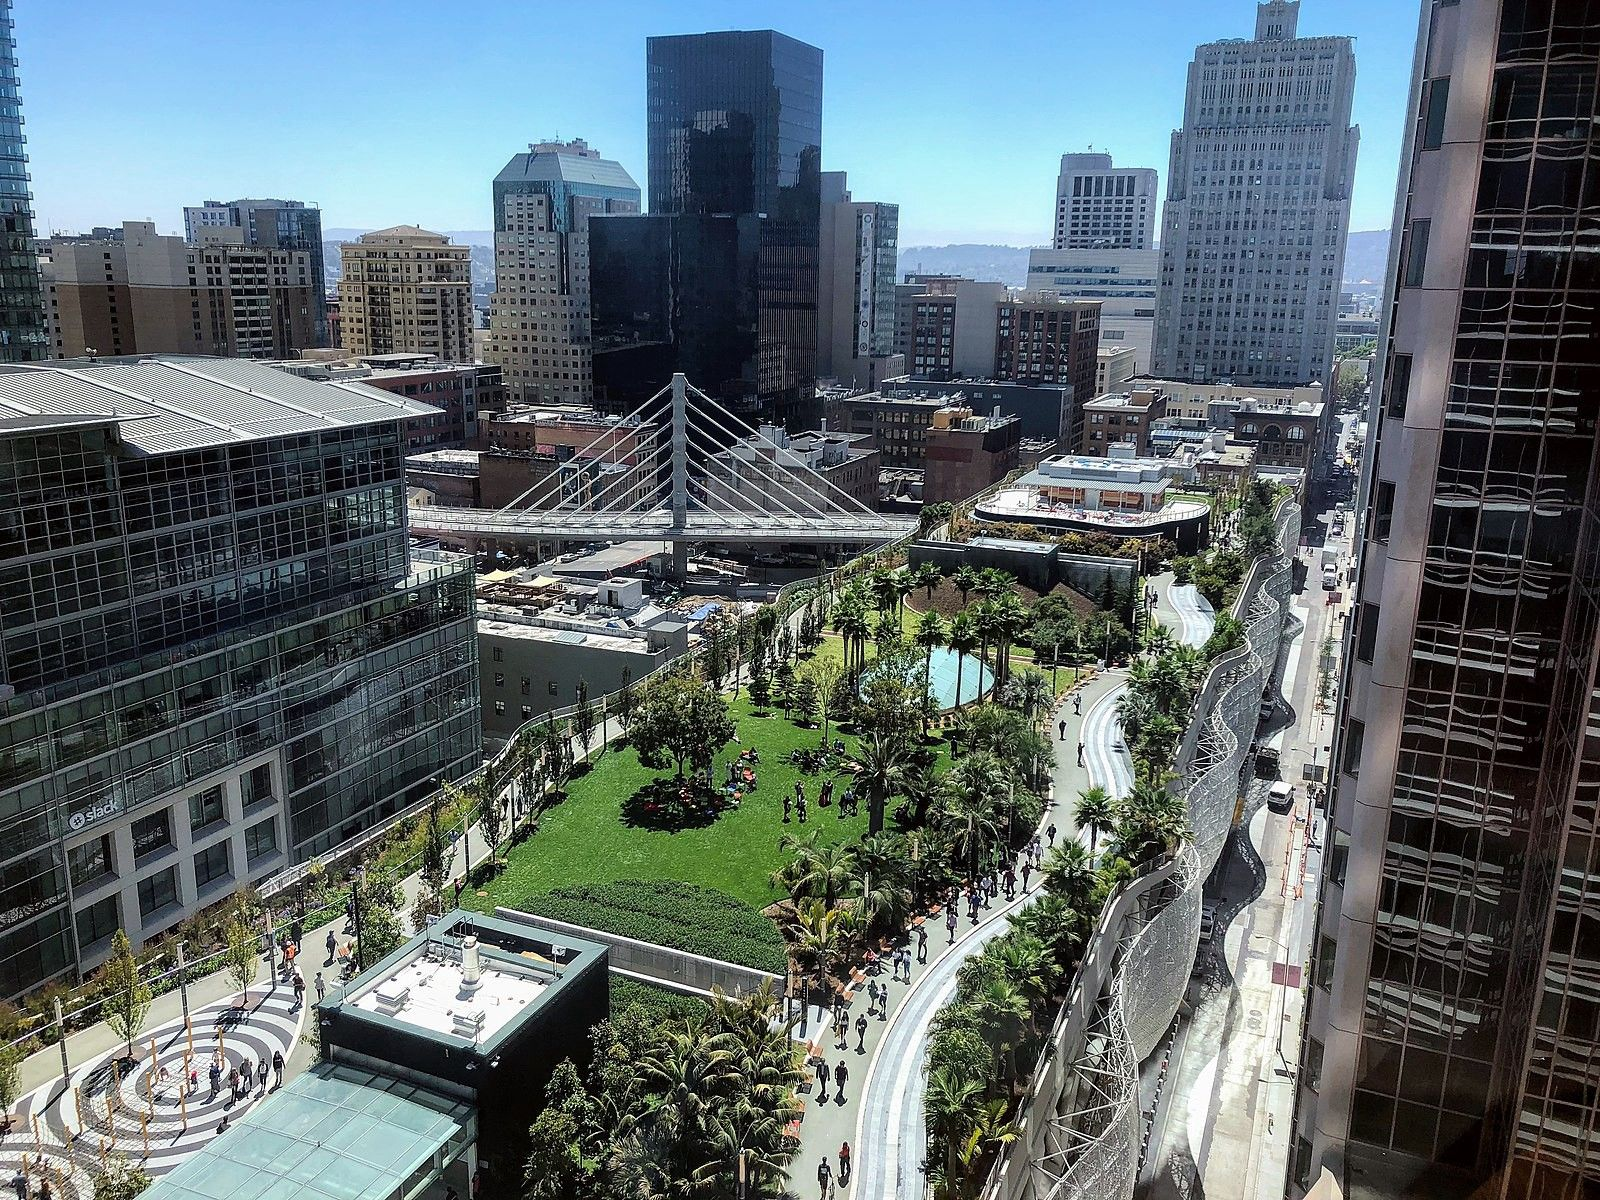 A photo of Class A buildings in San Francisco.